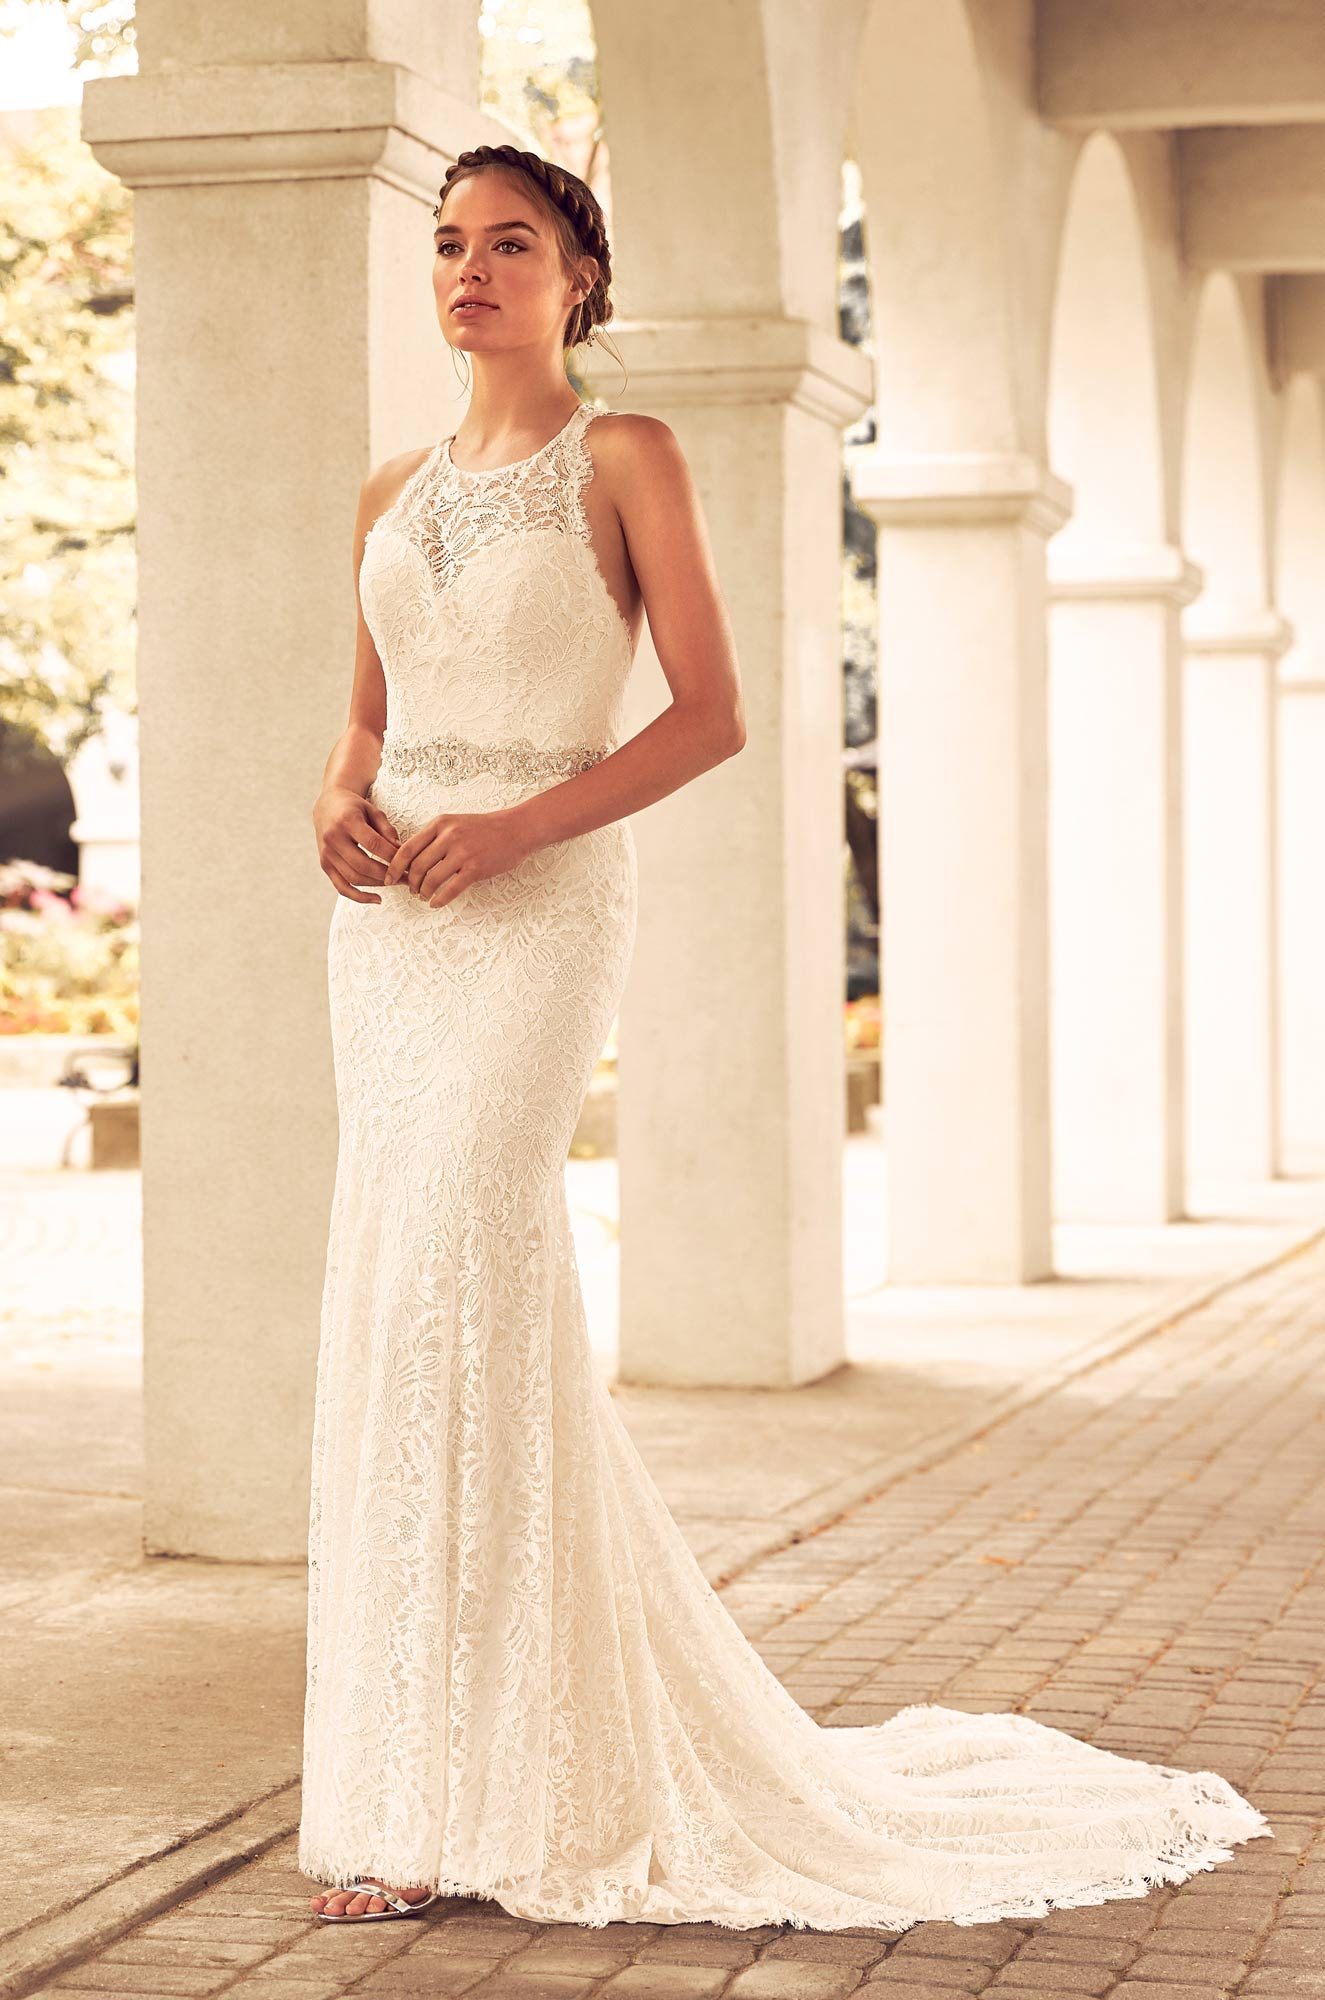 Lace Racerback Wedding Dress - Style #4795 | Paloma Blanca